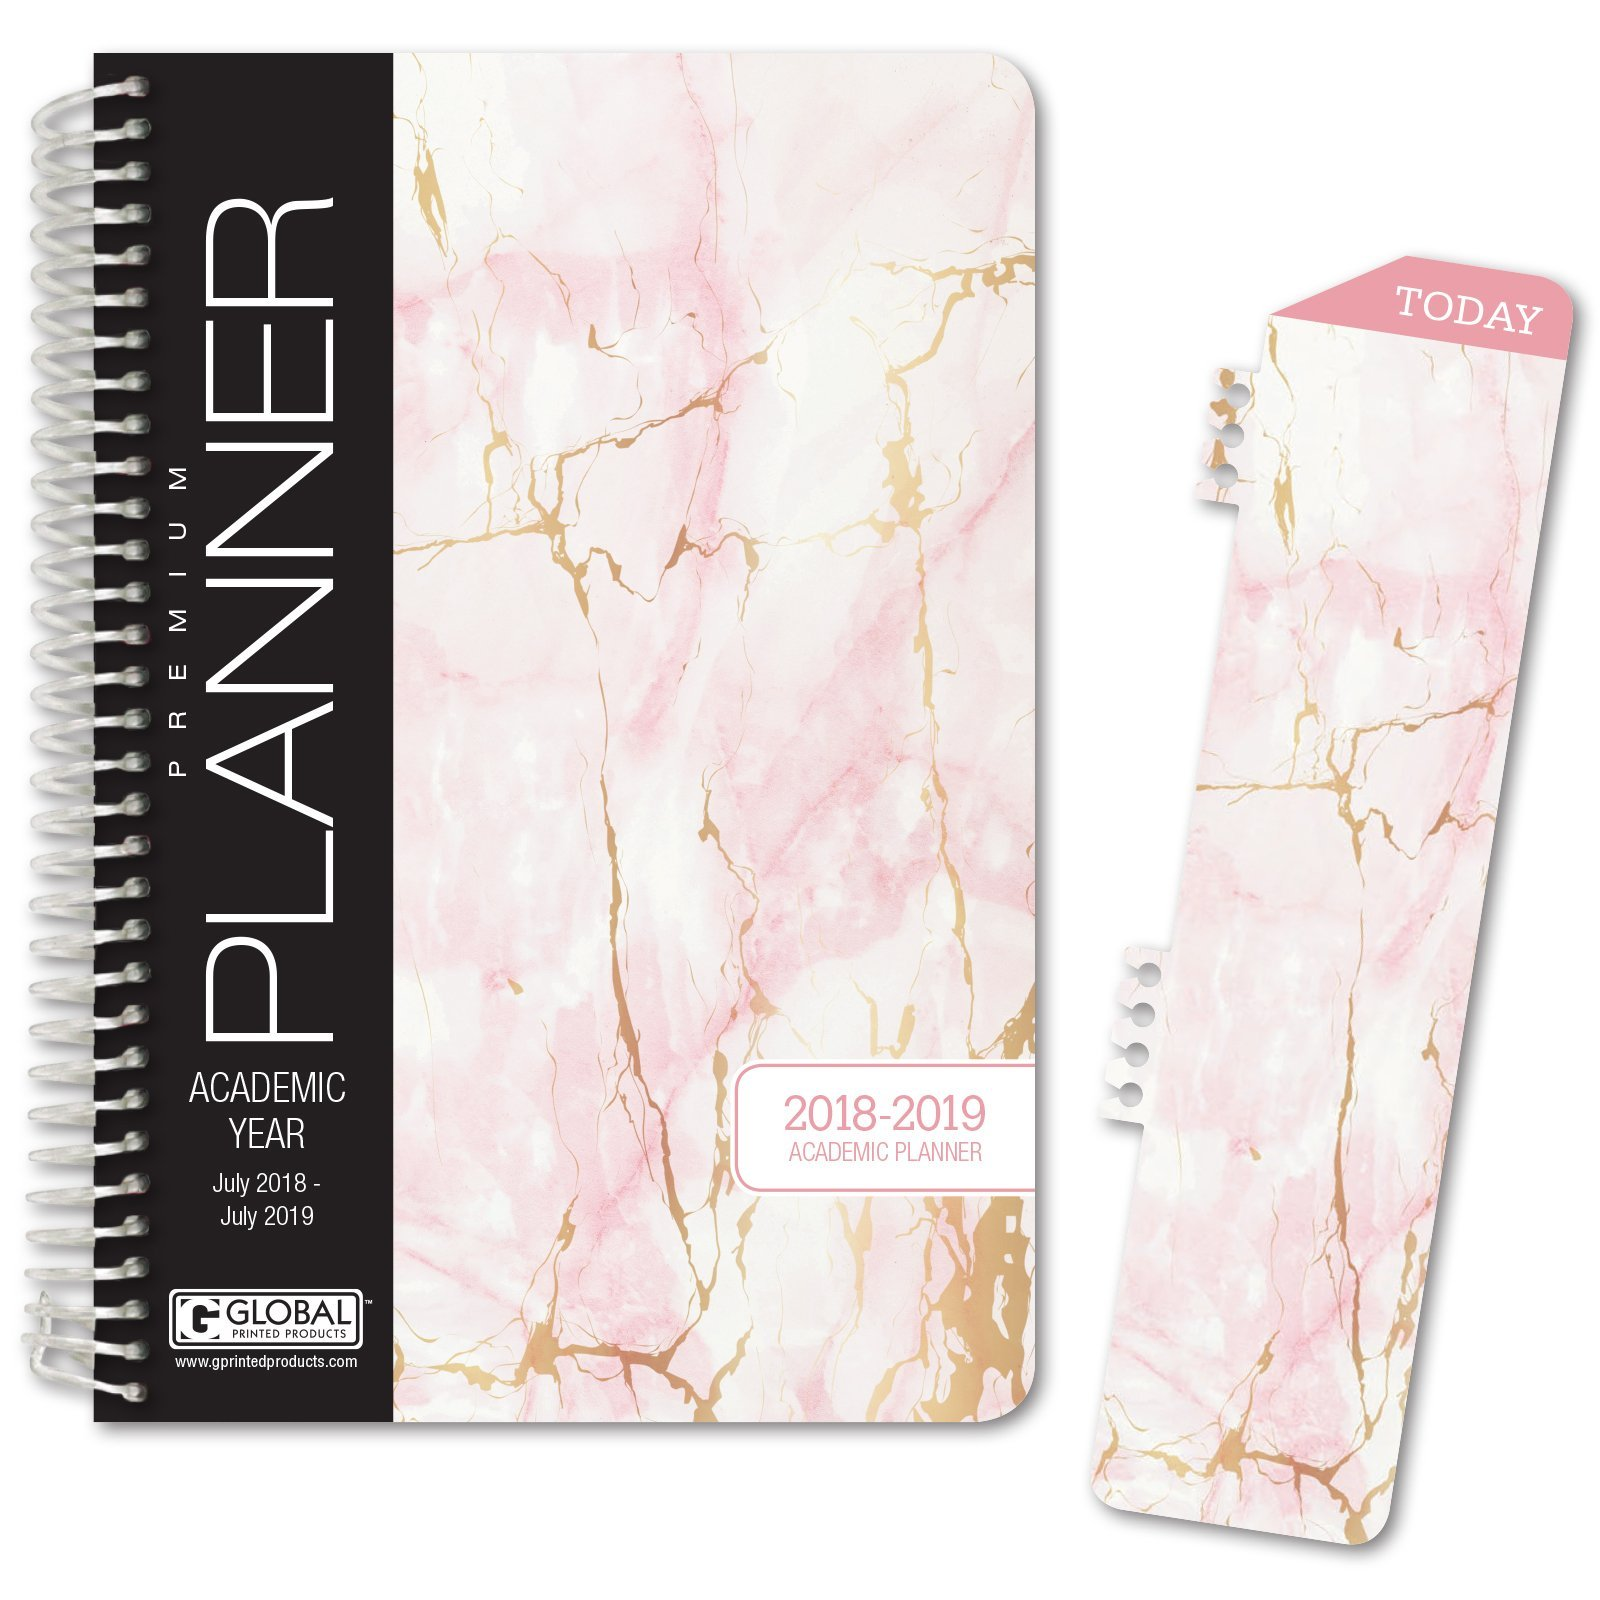 HARDCOVER Academic Year Planner 2018-2019 - 5.5''x8'' Daily Planner/Weekly Planner/Monthly Planner/Yearly Agenda. Bonus Bookmark (Pink Marble)